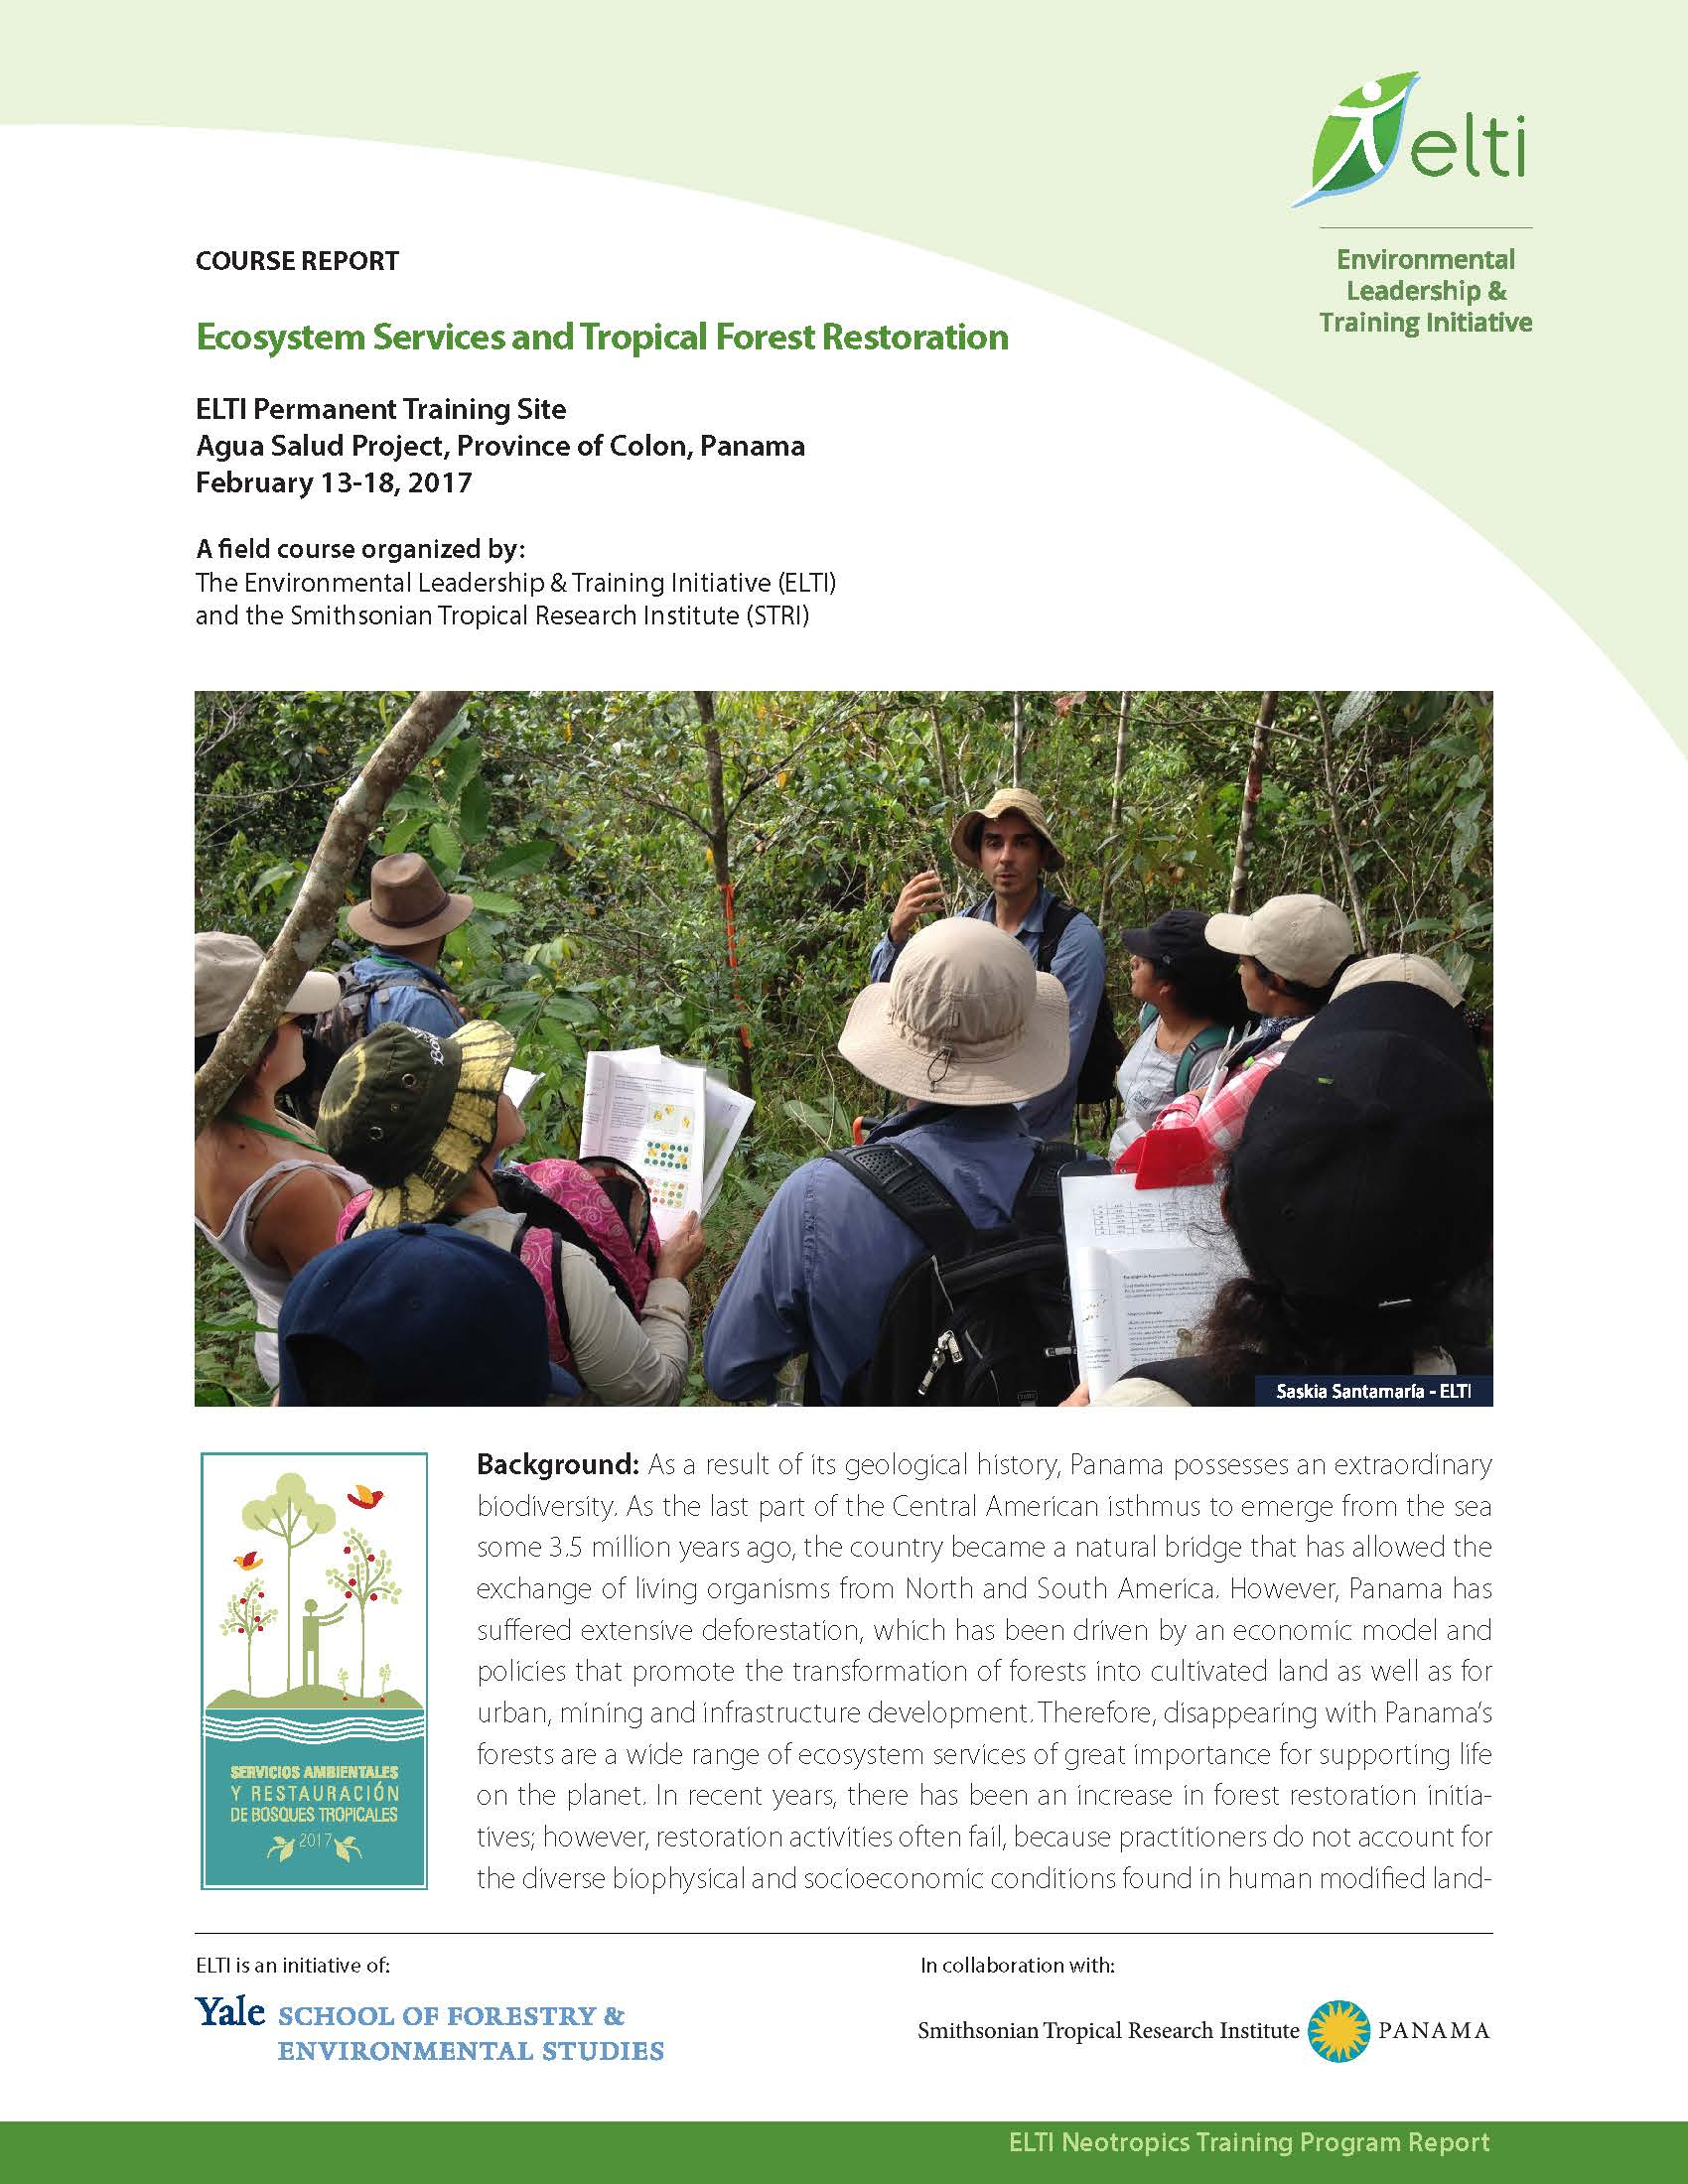 Ecosystem Services and Tropical Forest Restoration Course Report